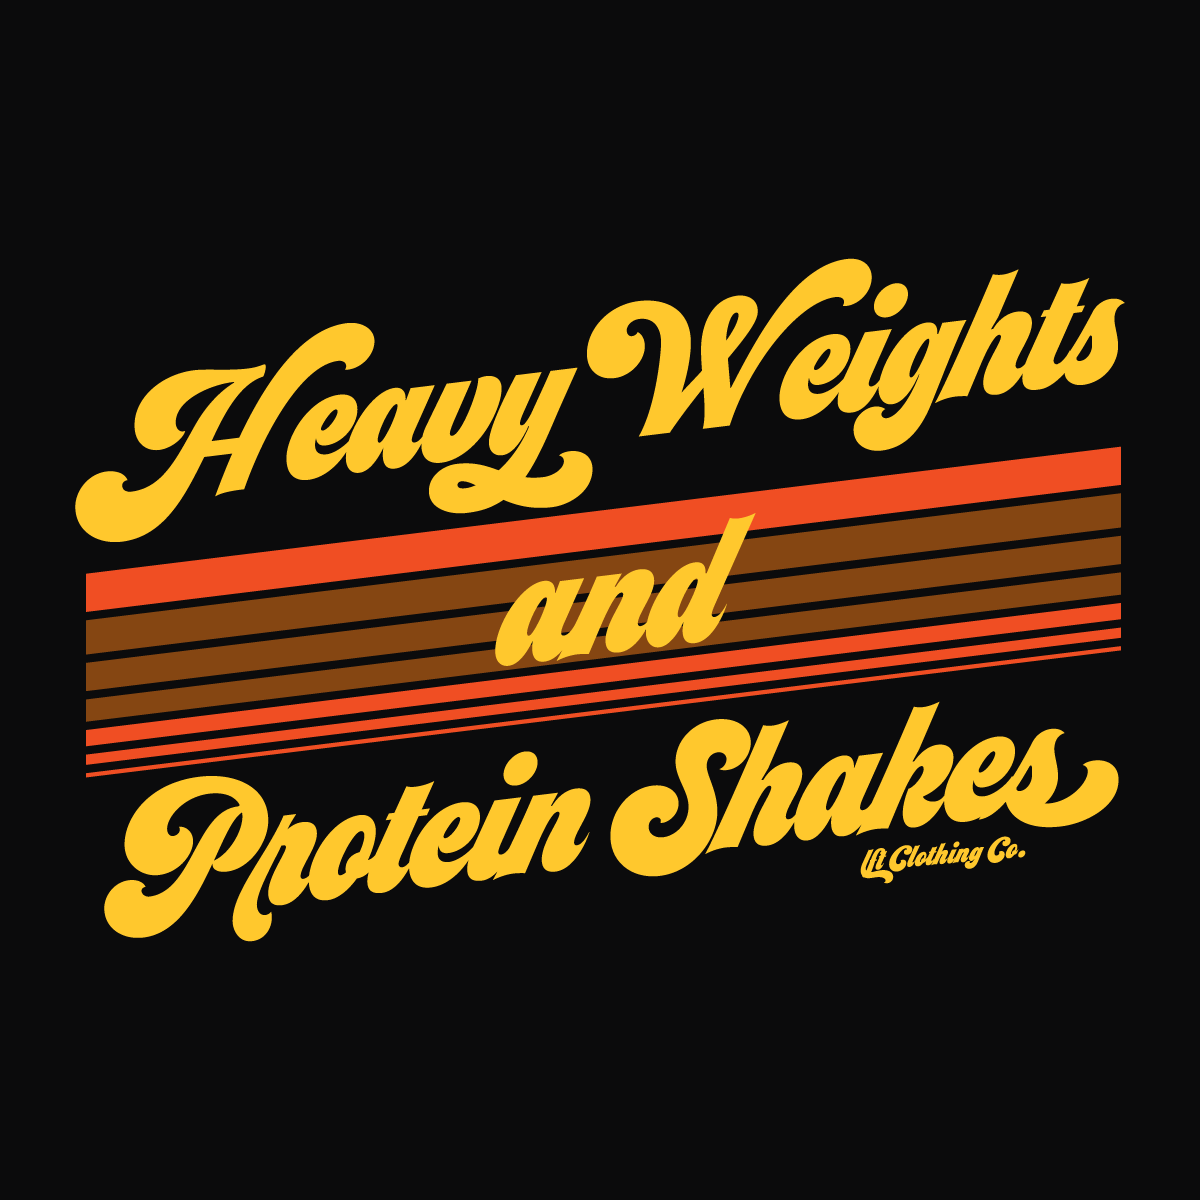 Heavy Weights & Protein Shakes Slim Fit Tee